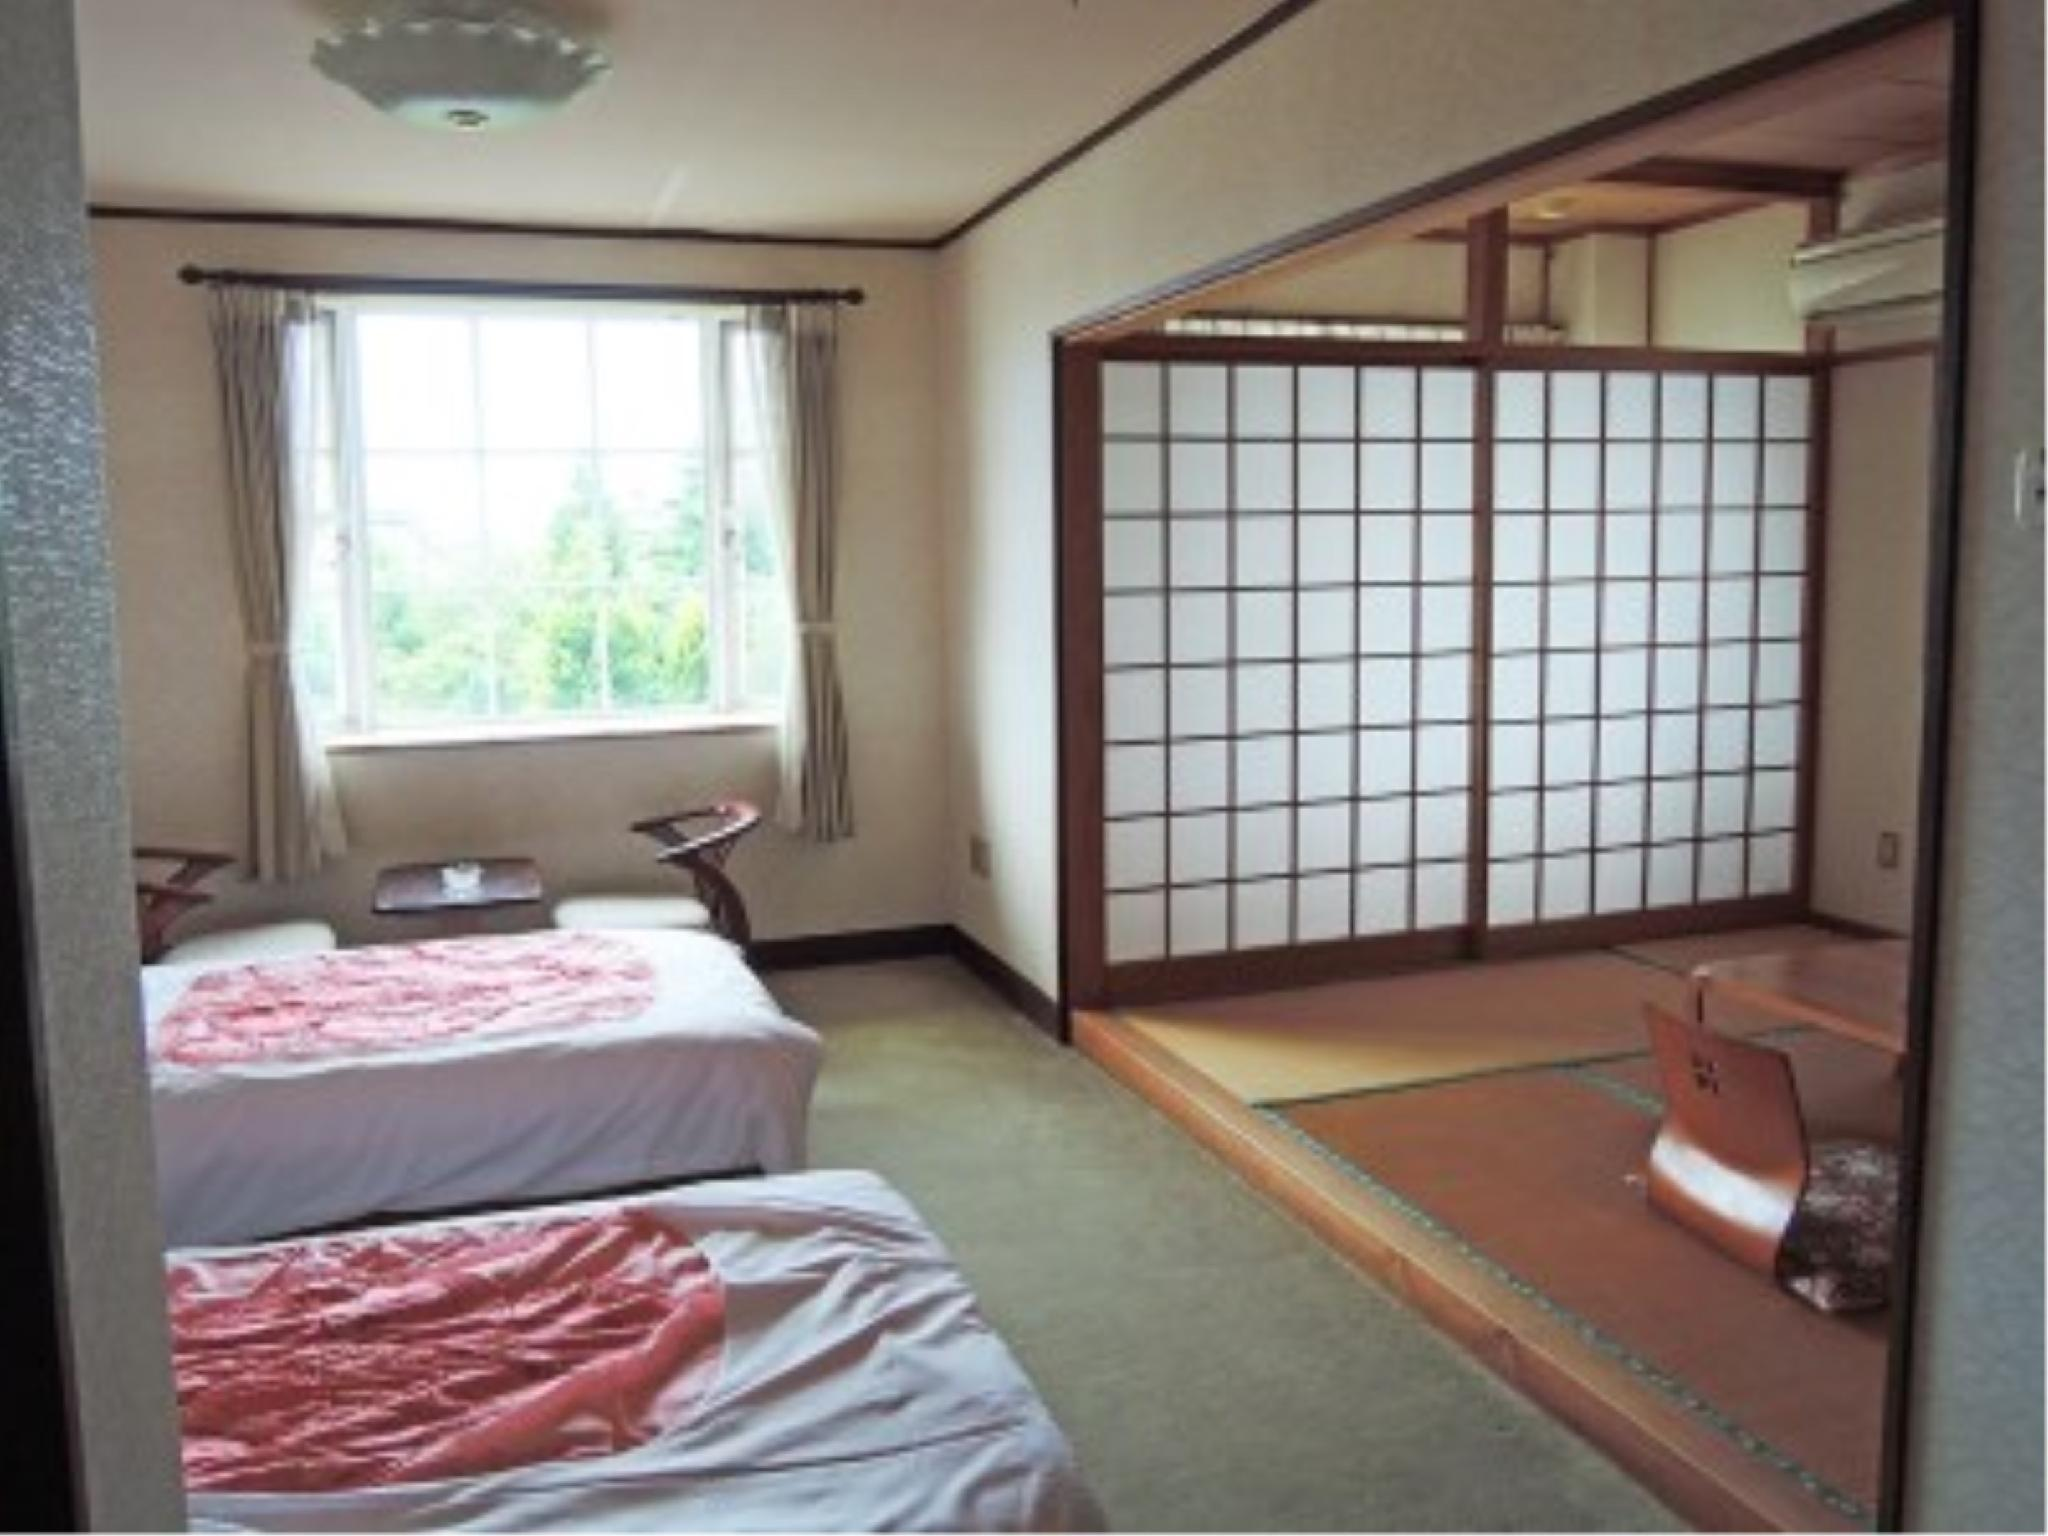 和洋室(ユニットバス付) (Japanese/Western-style Room *Has Modular Bath)